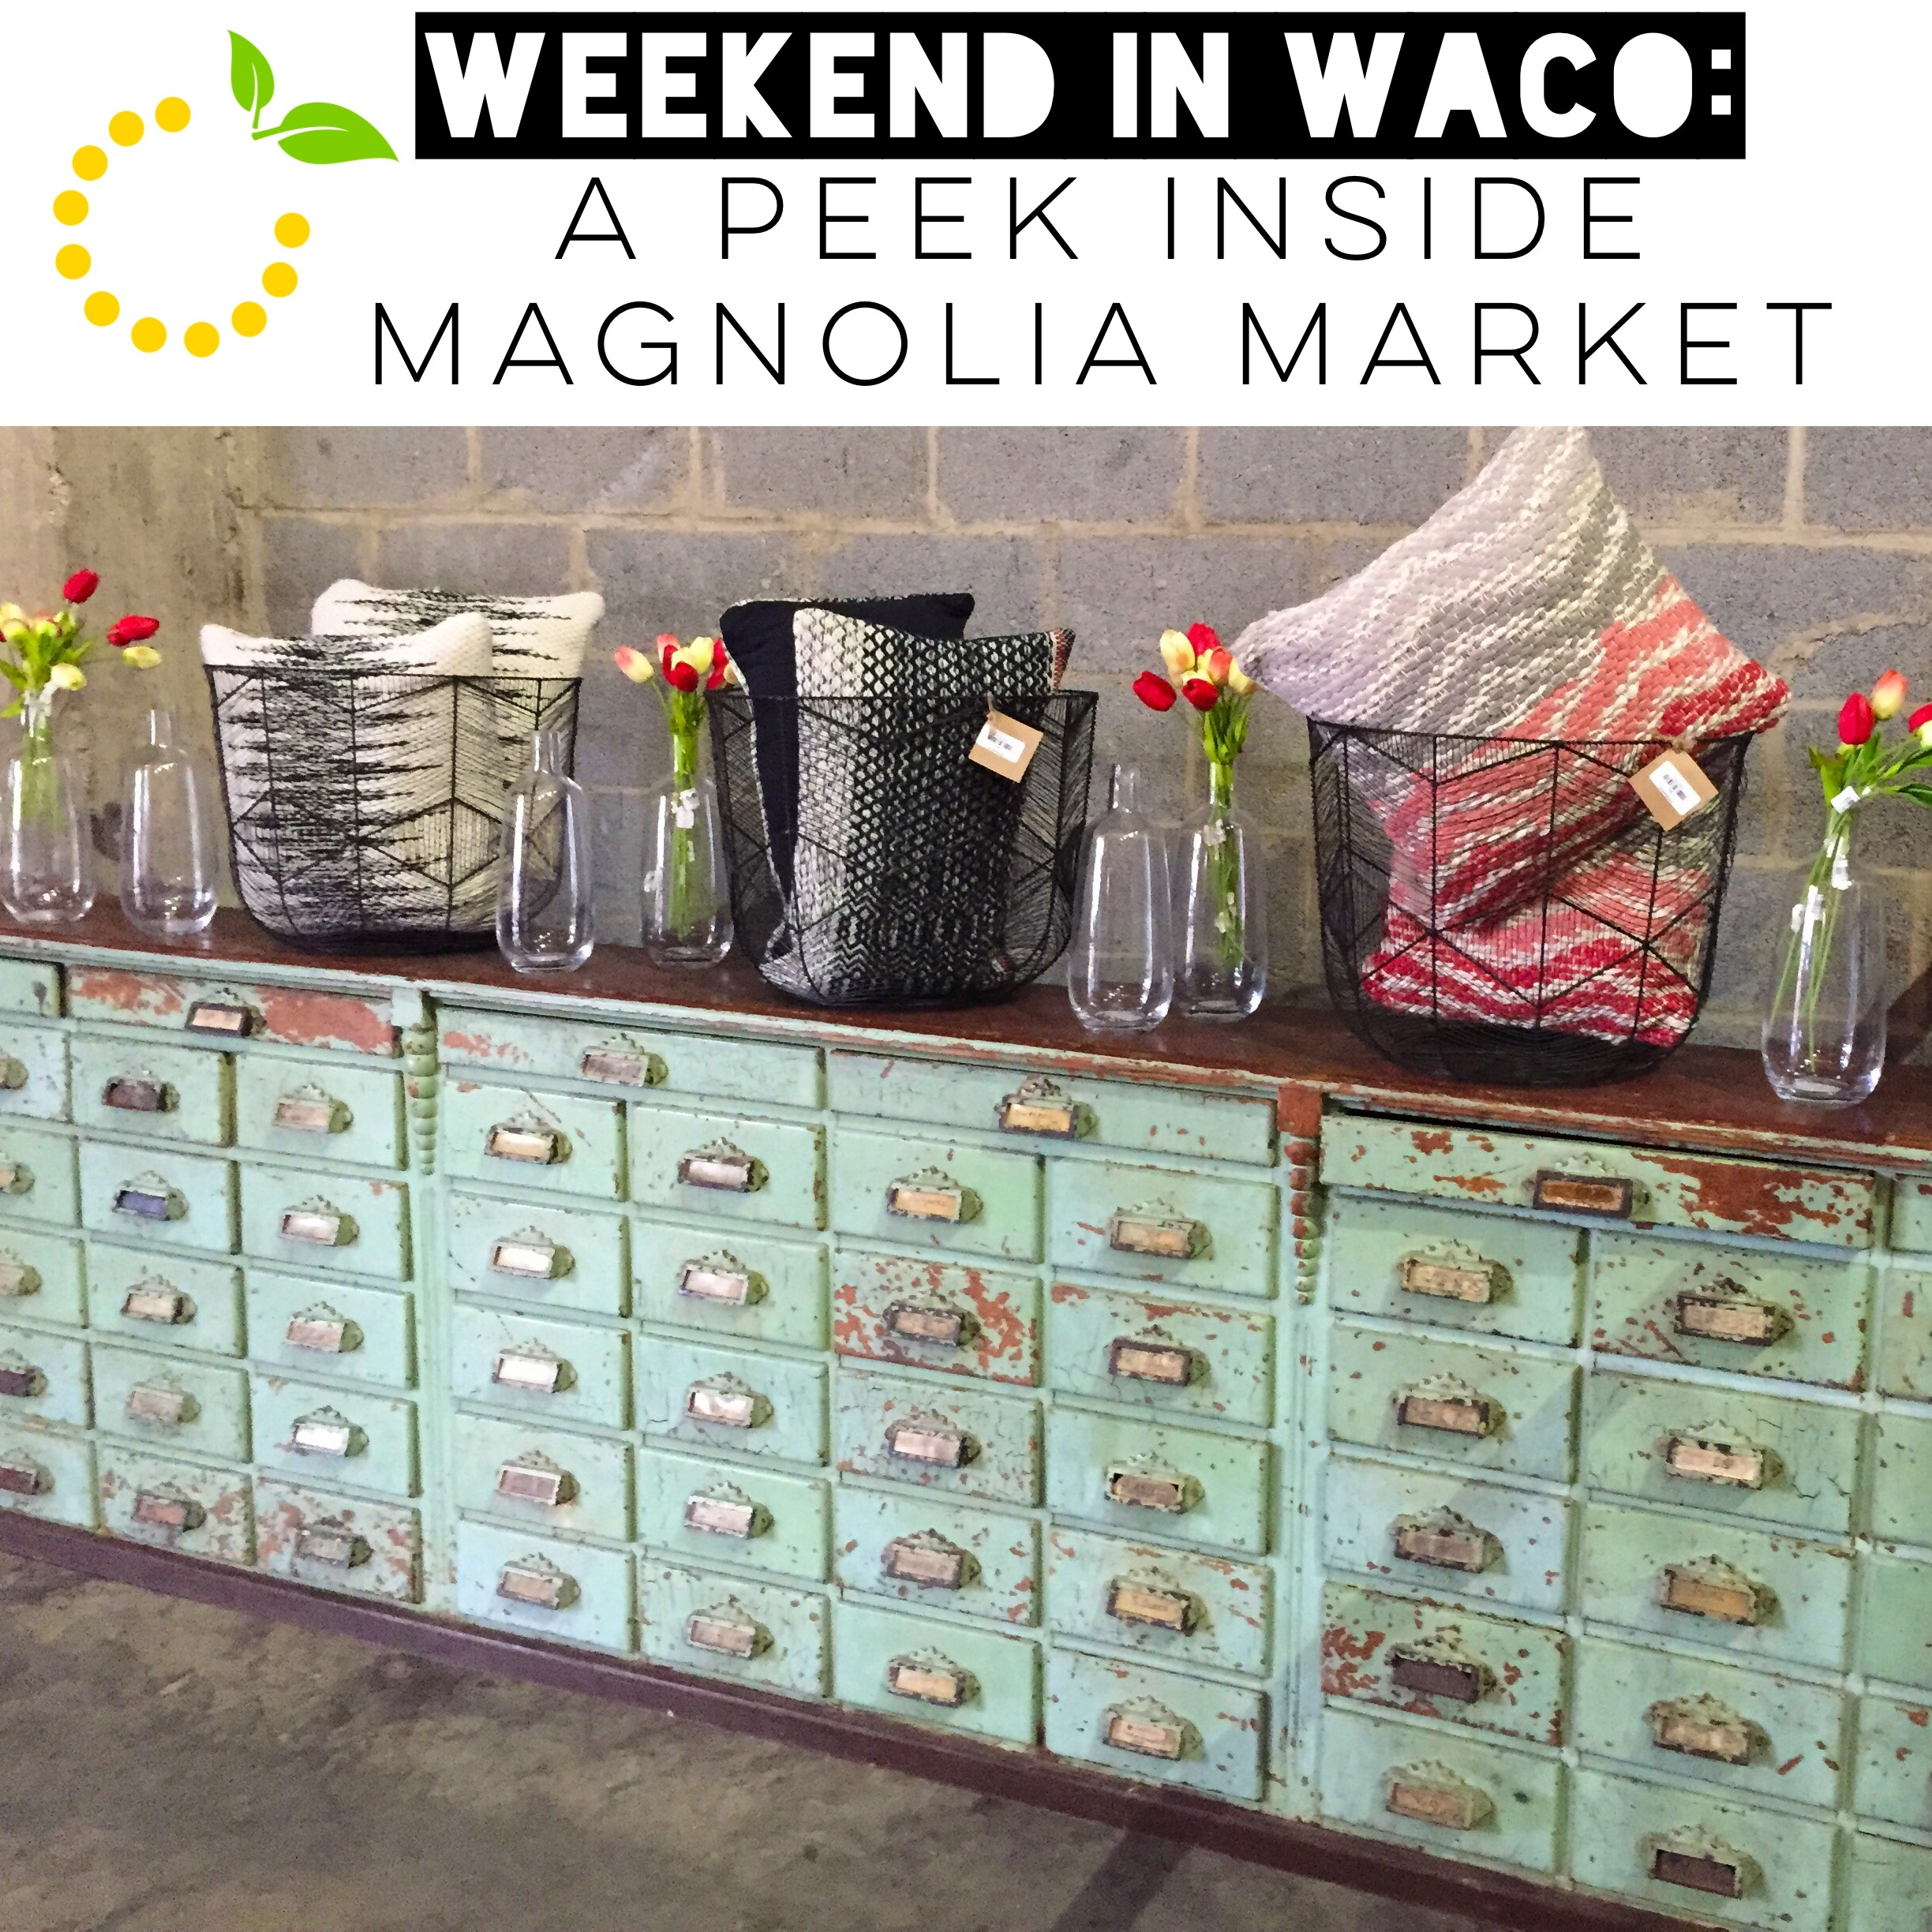 Weekend in Waco sweetlemonmade.com